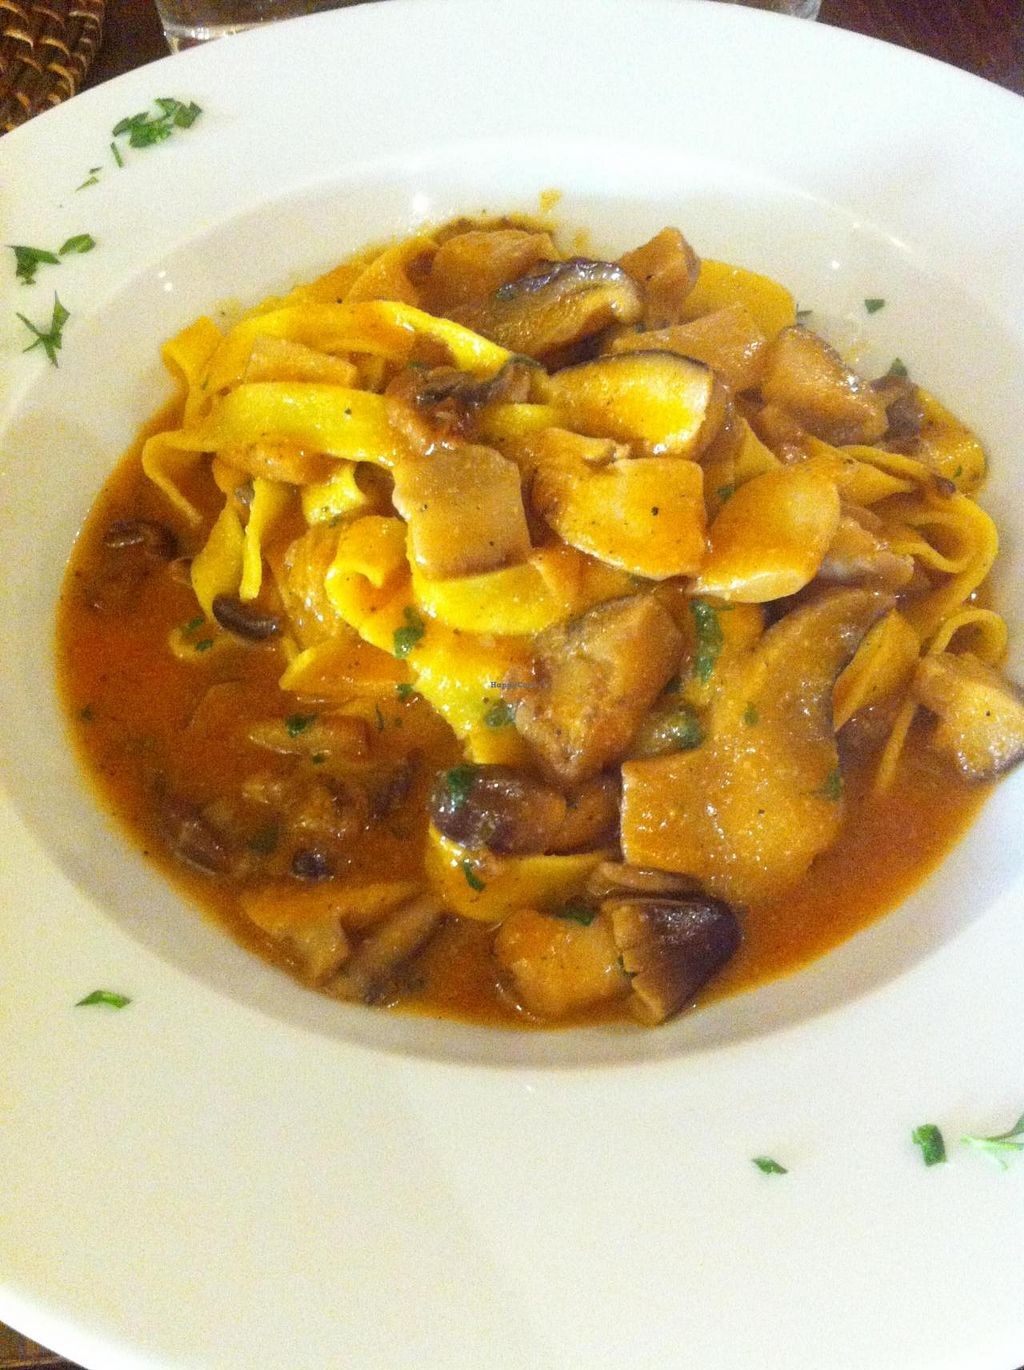 """Photo of Nuraghe  by <a href=""""/members/profile/kulwant"""">kulwant</a> <br/>Tagliatelle with mushrooms and home-made tomato sauce <br/> August 31, 2014  - <a href='/contact/abuse/image/50555/78715'>Report</a>"""